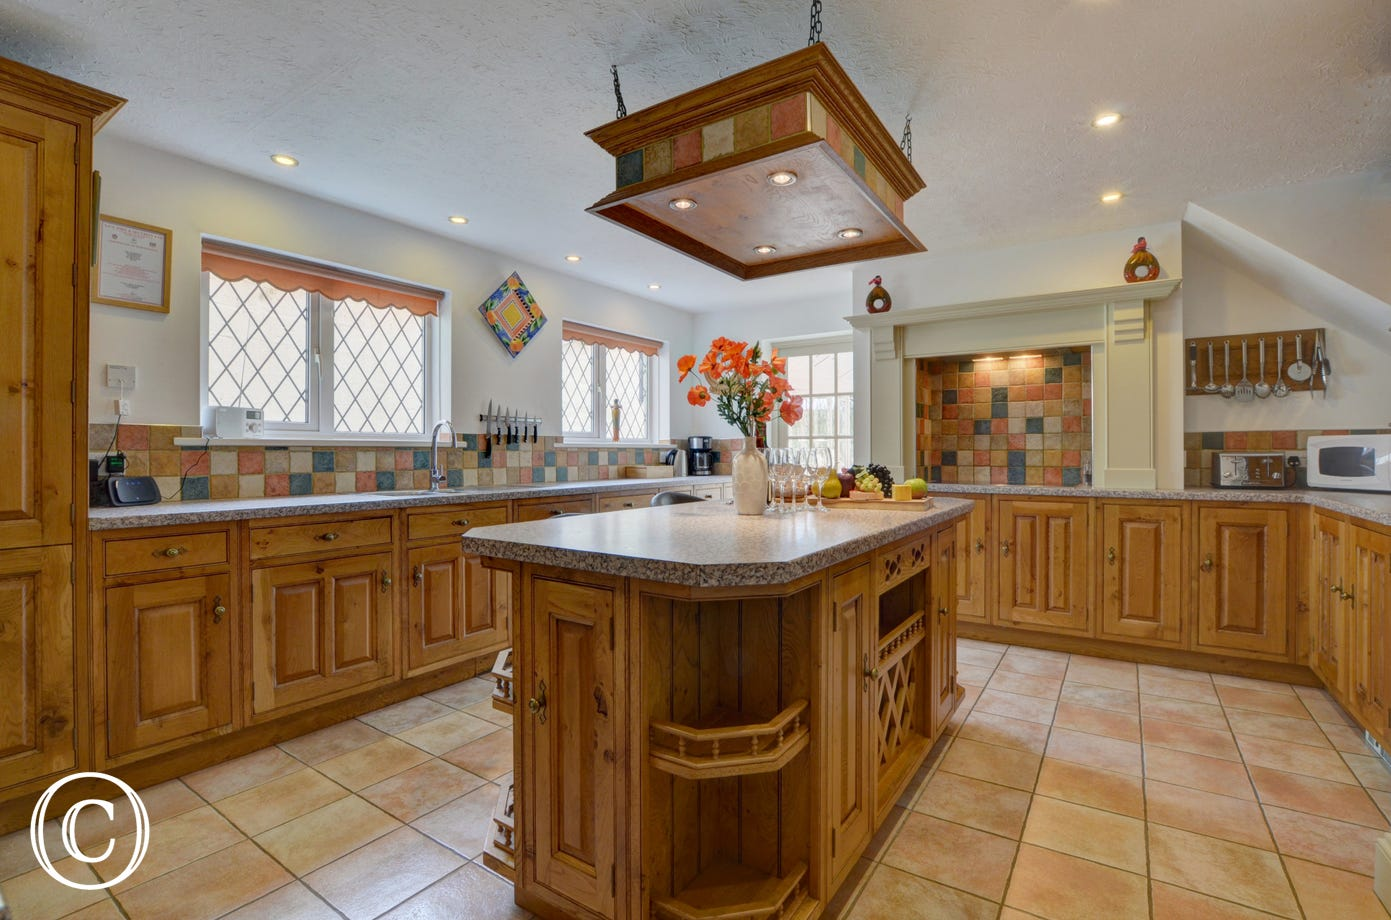 Spacious country style kitchen